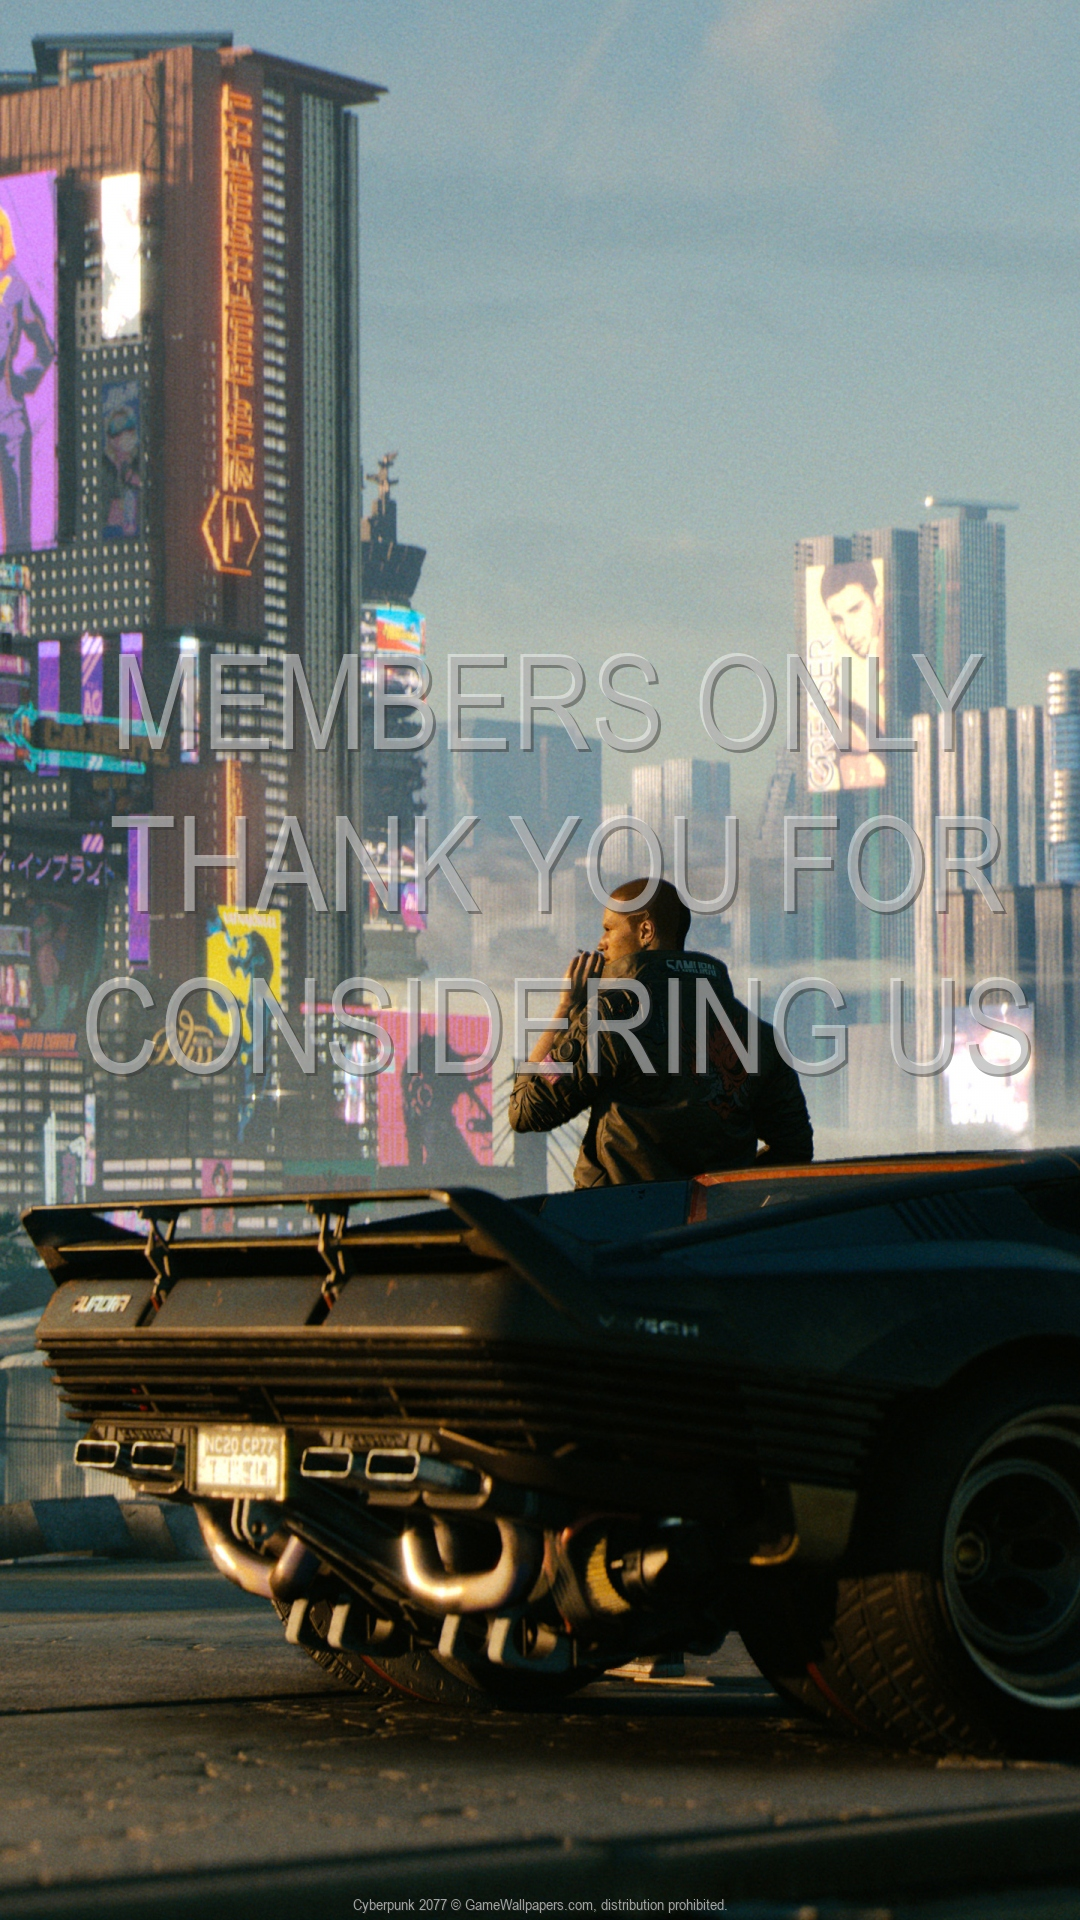 Cyberpunk 2077 1920x1080 Mobile wallpaper or background 06